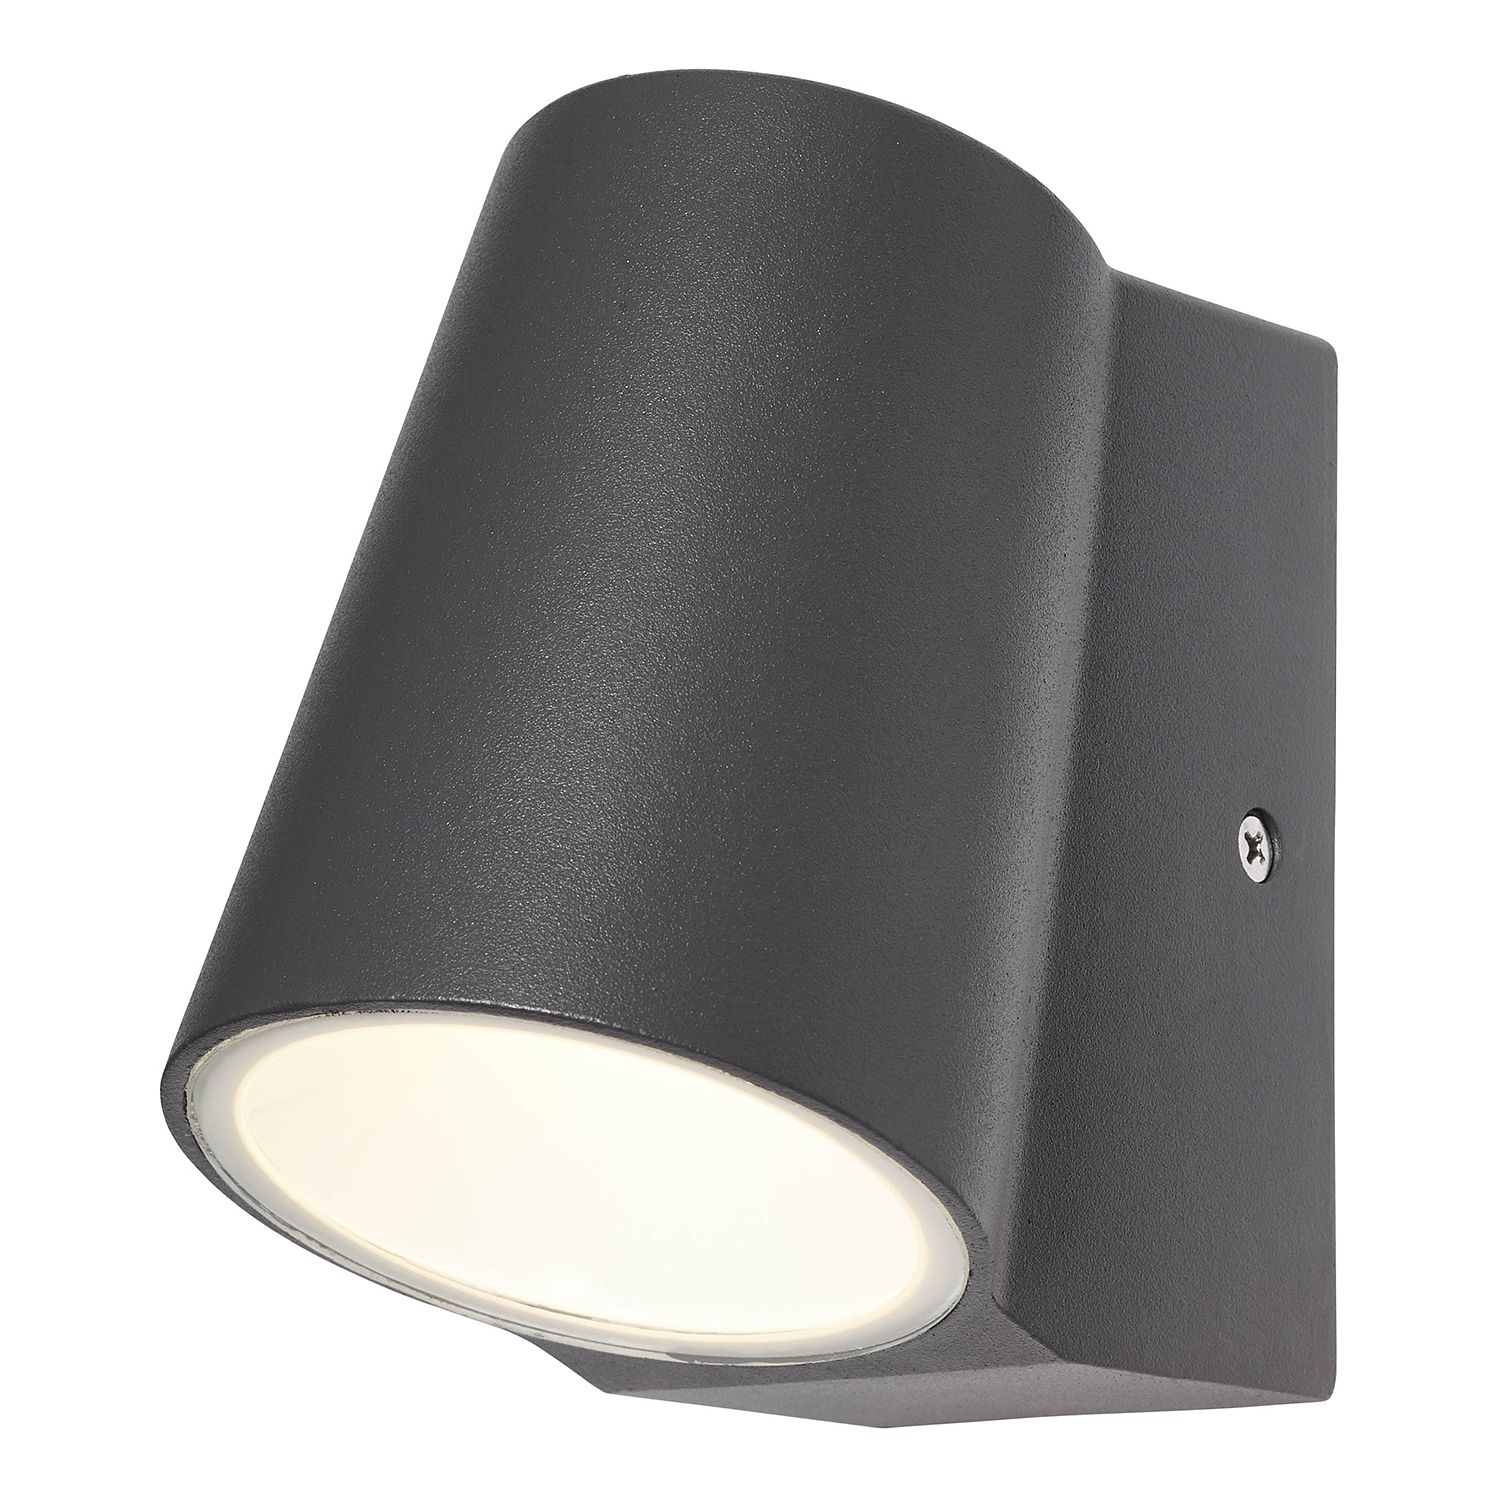 home24 LED-Aussenwandleuchte Johna